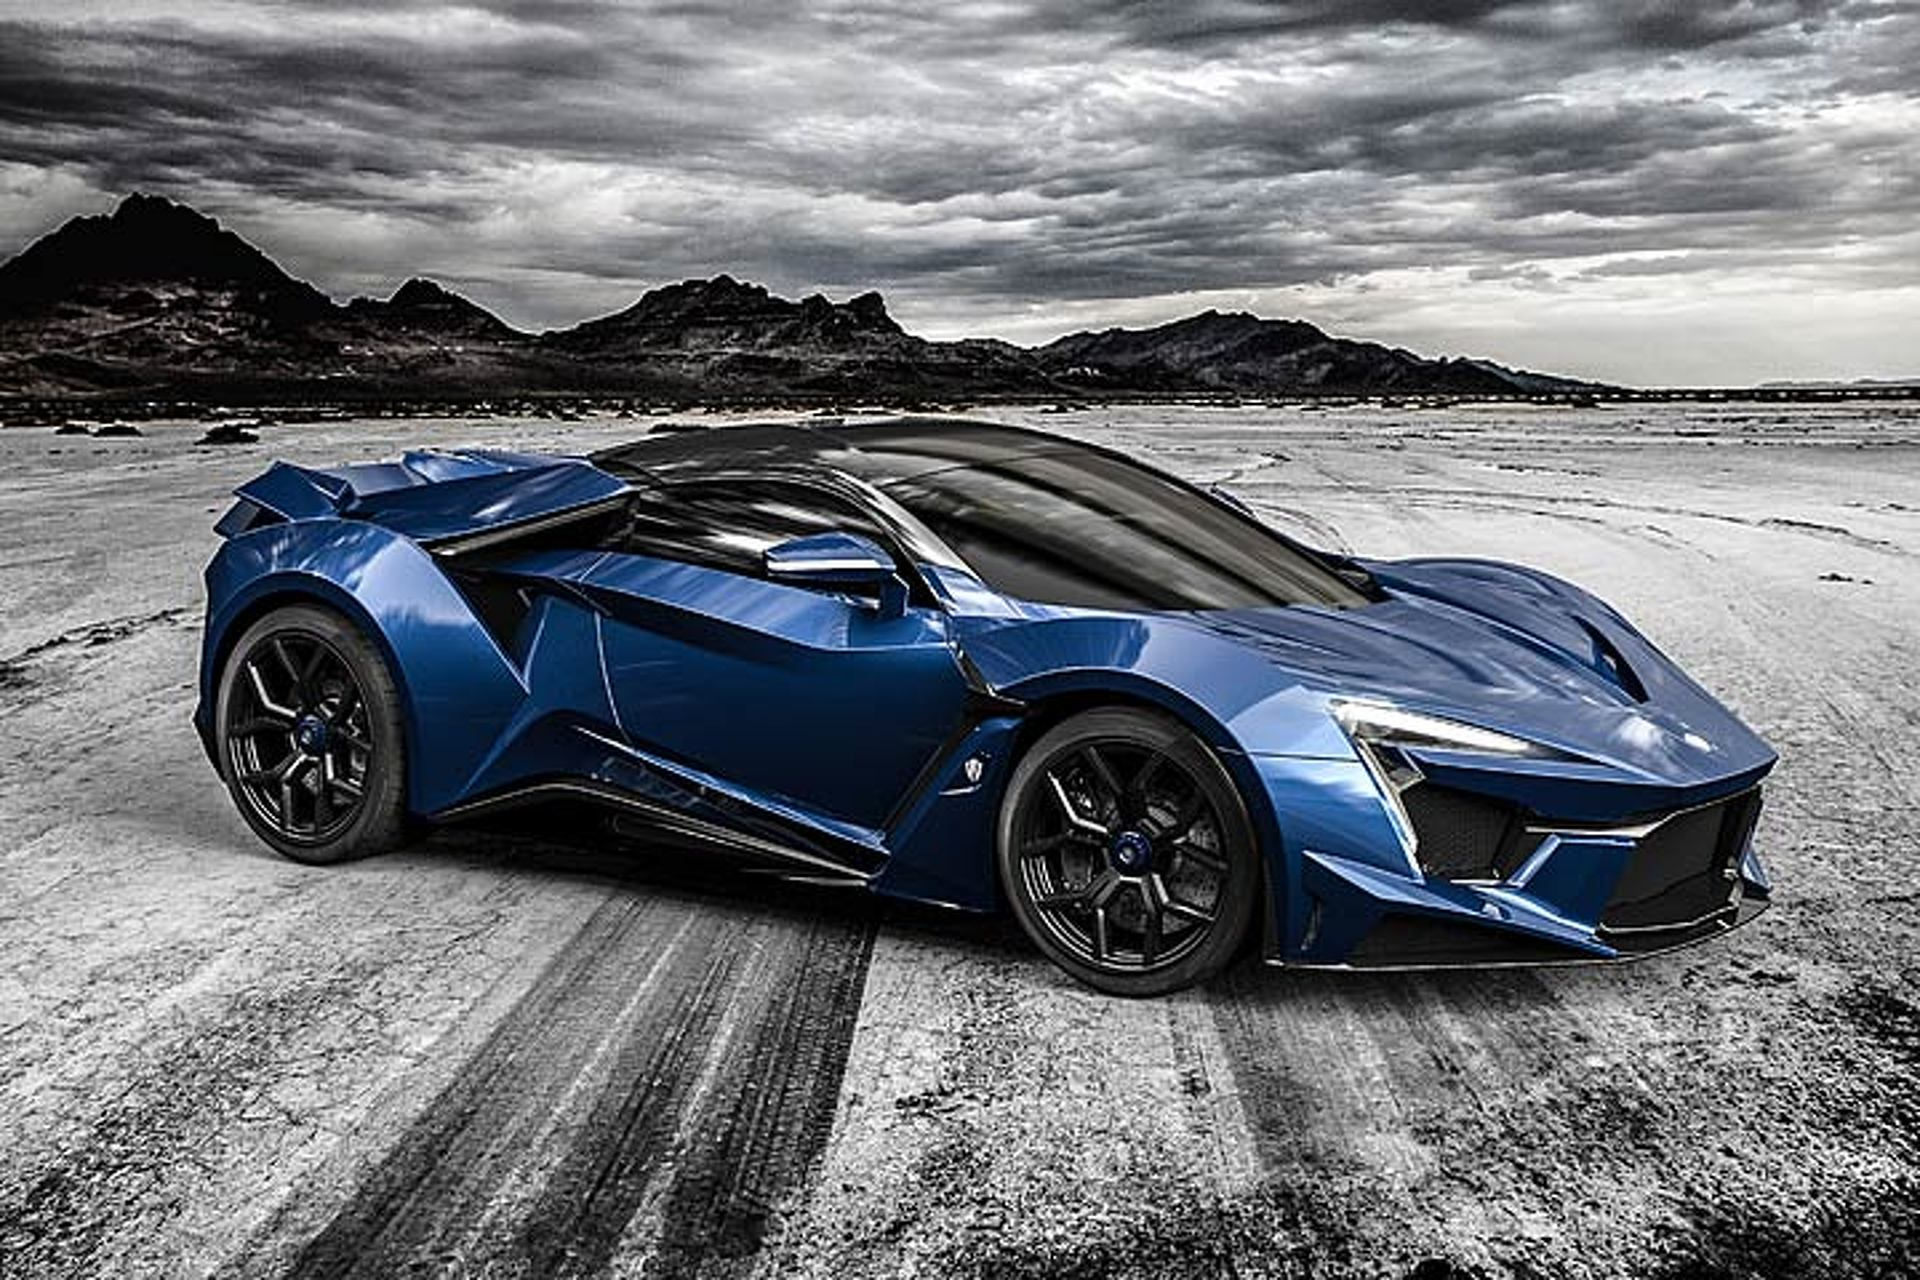 Fenyr SuperSport: Dubai's 900-HP Supercar Has Arrived